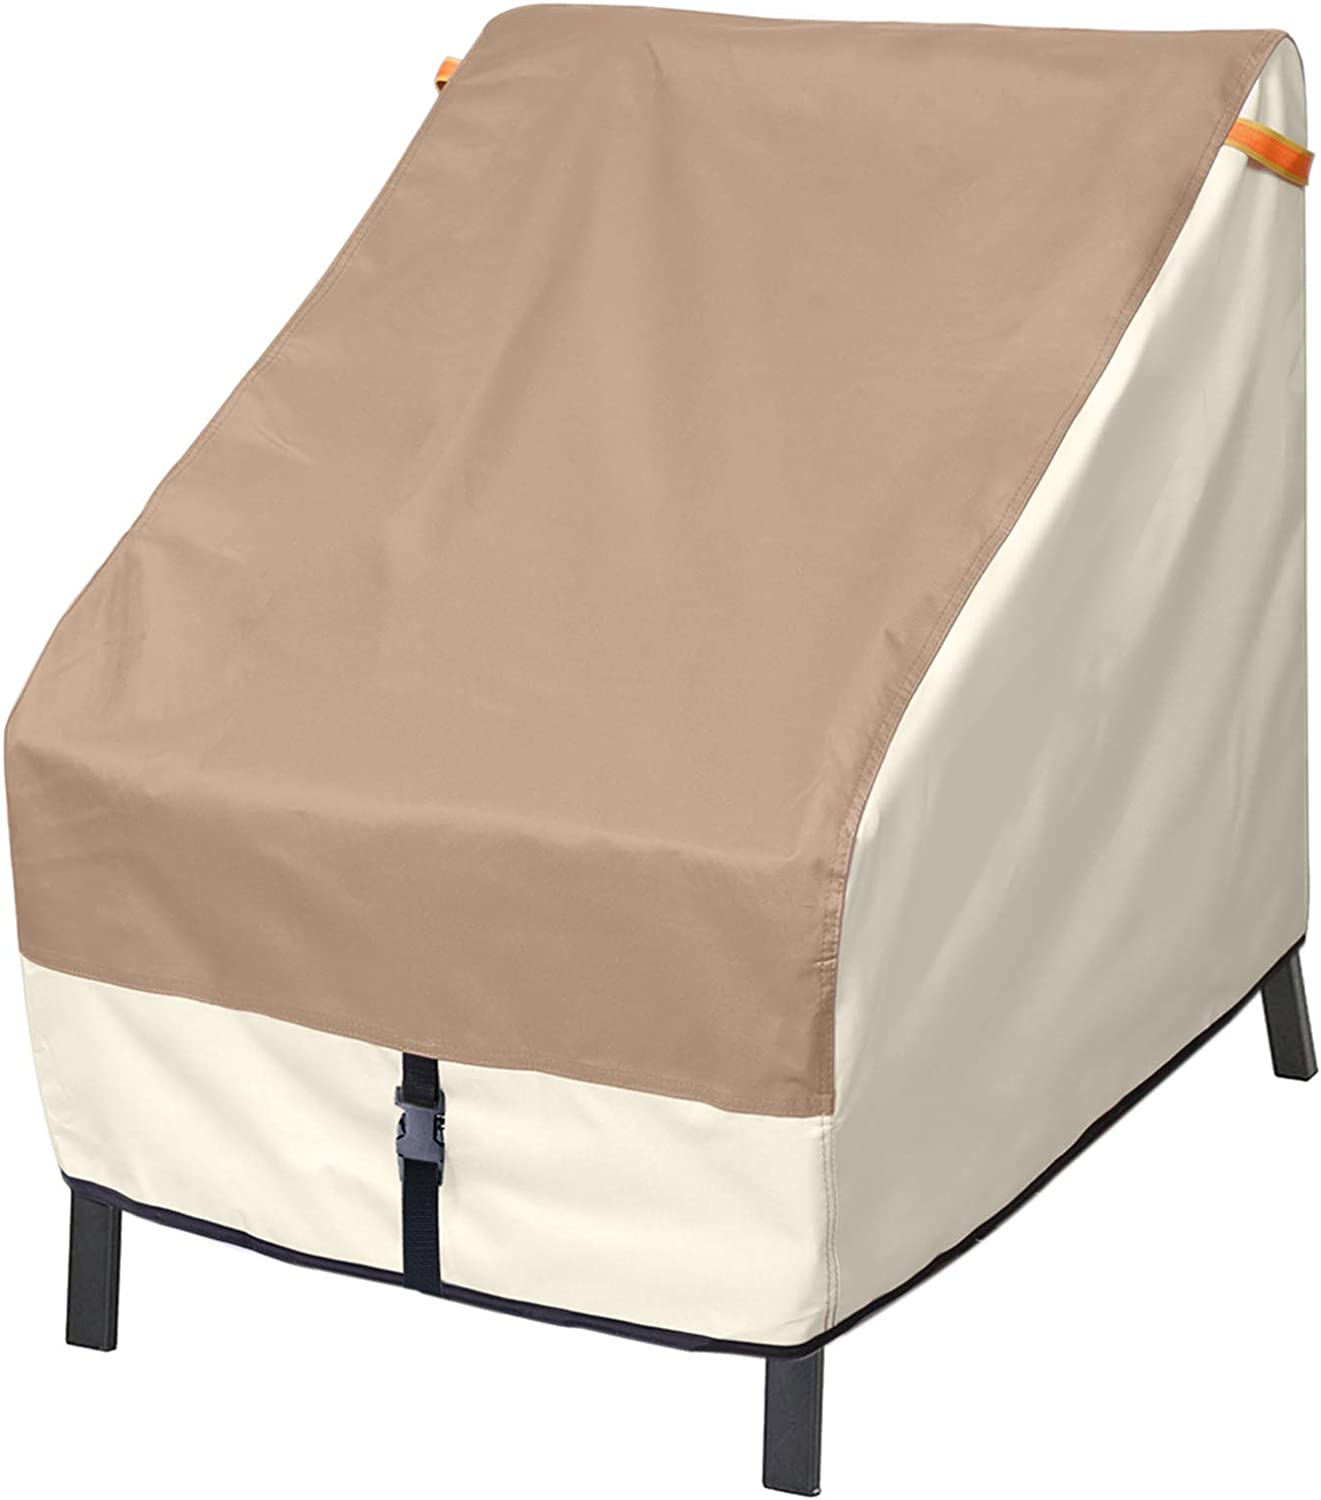 Porch Shield Patio Chair Covers - Waterproof Outdoor Standard Dining Chair Cover - 26W x 28D x 28H inch, Light Tan & Khaki